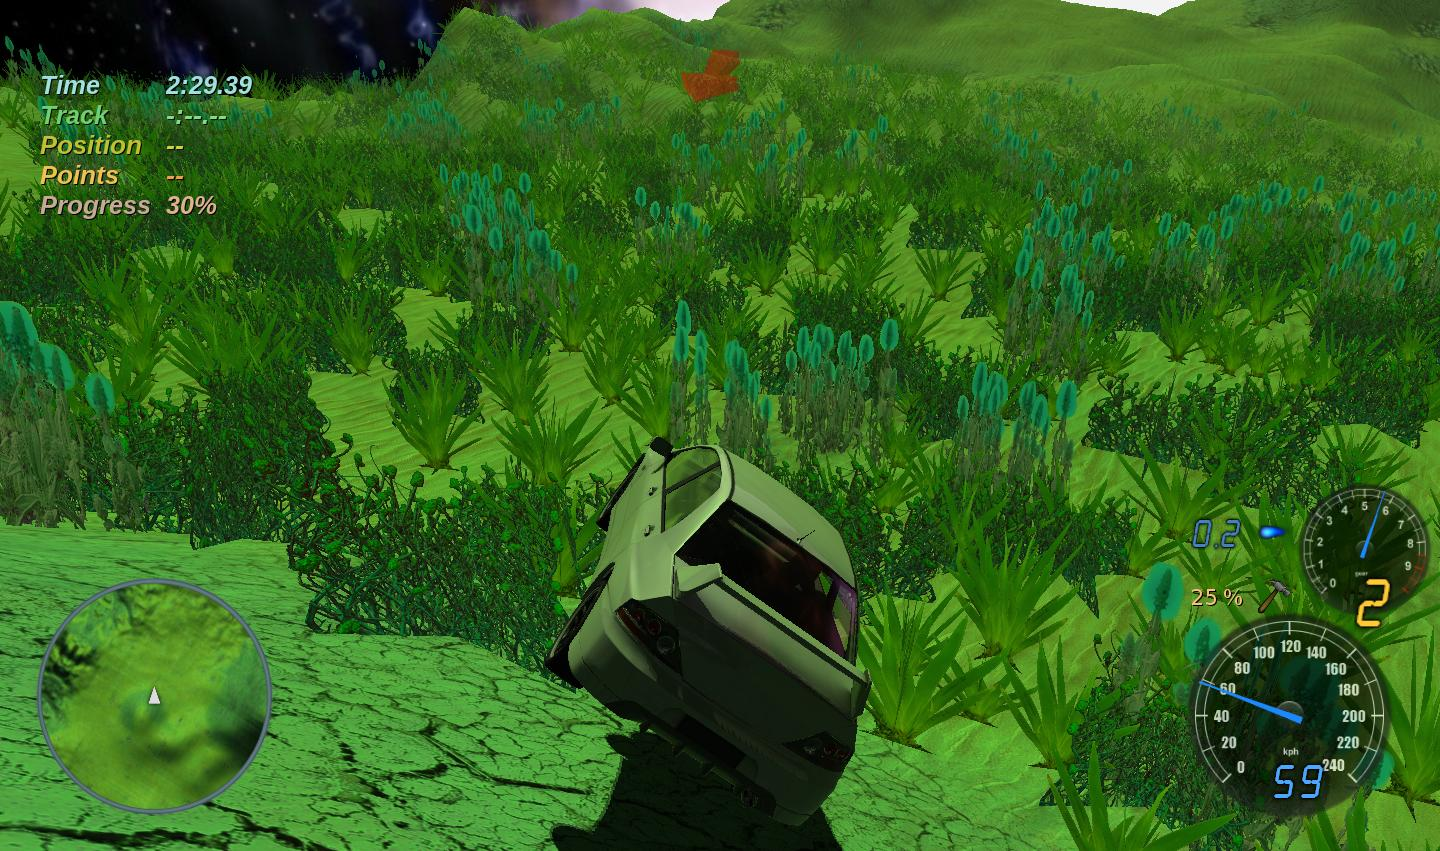 alien_scenery_grass.jpg